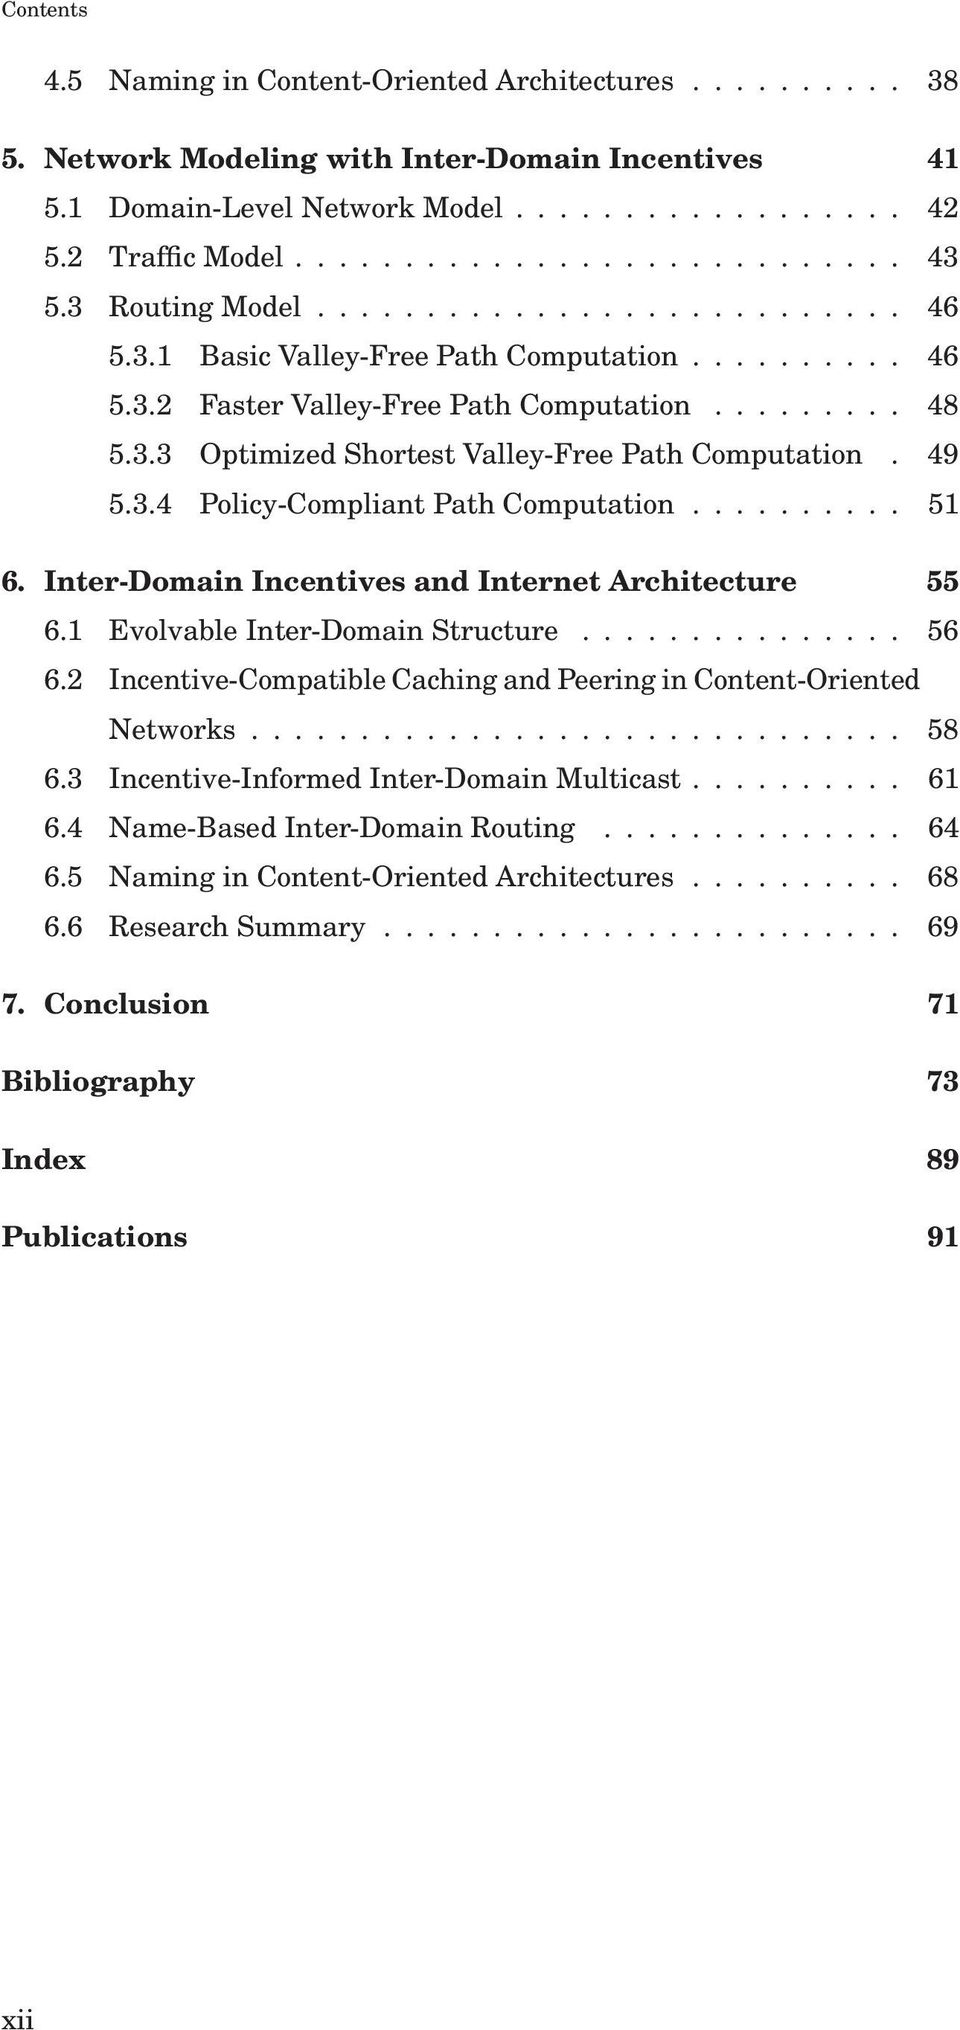 Inter-Domain Incentives and Internet Architecture 55 6.1 Evolvable Inter-Domain Structure... 56 6.2 Incentive-Compatible Caching and Peering in Content-Oriented Networks... 58 6.